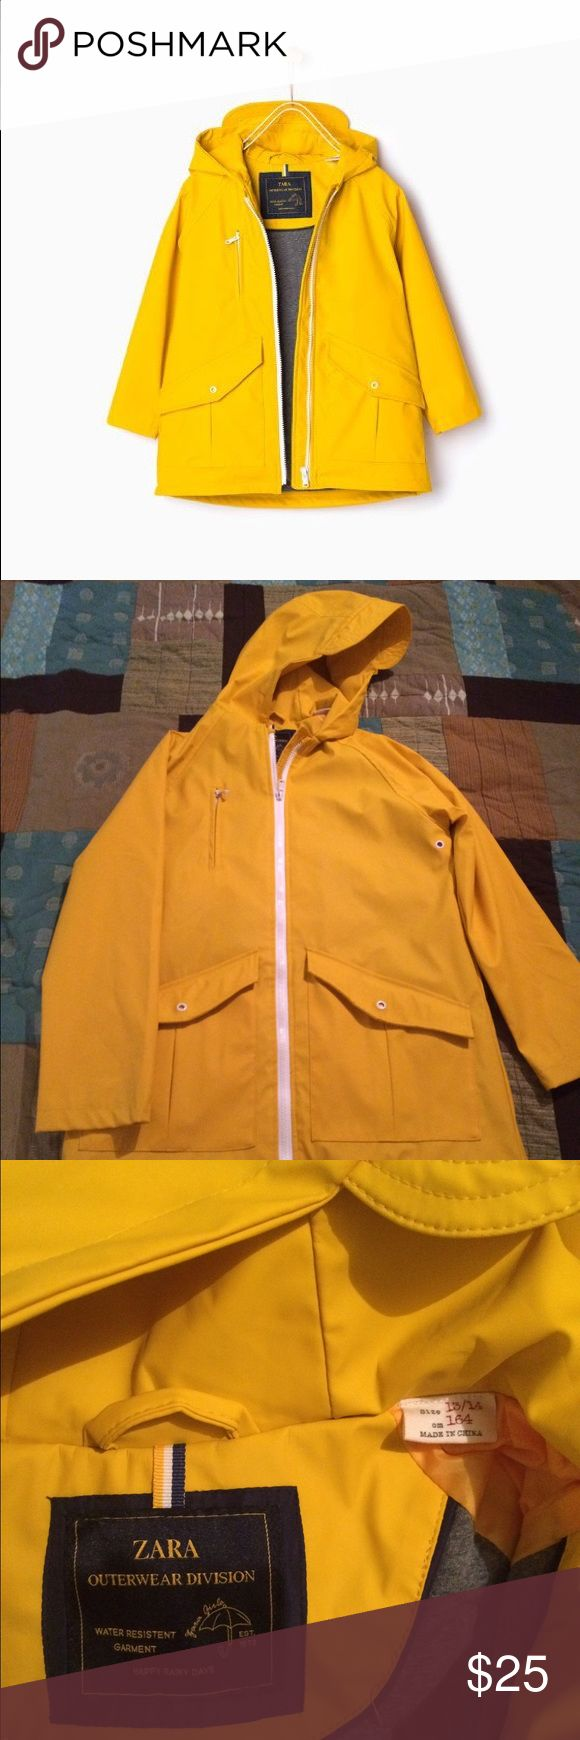 Yellow raincoat Zara kids yellow rubber raincoat, kids size 13-14, fits a women's small except has slightly shorter sleeves. In good used condition, just has a small mark by front zipper (see last pic). Zara Jackets & Coats Raincoats